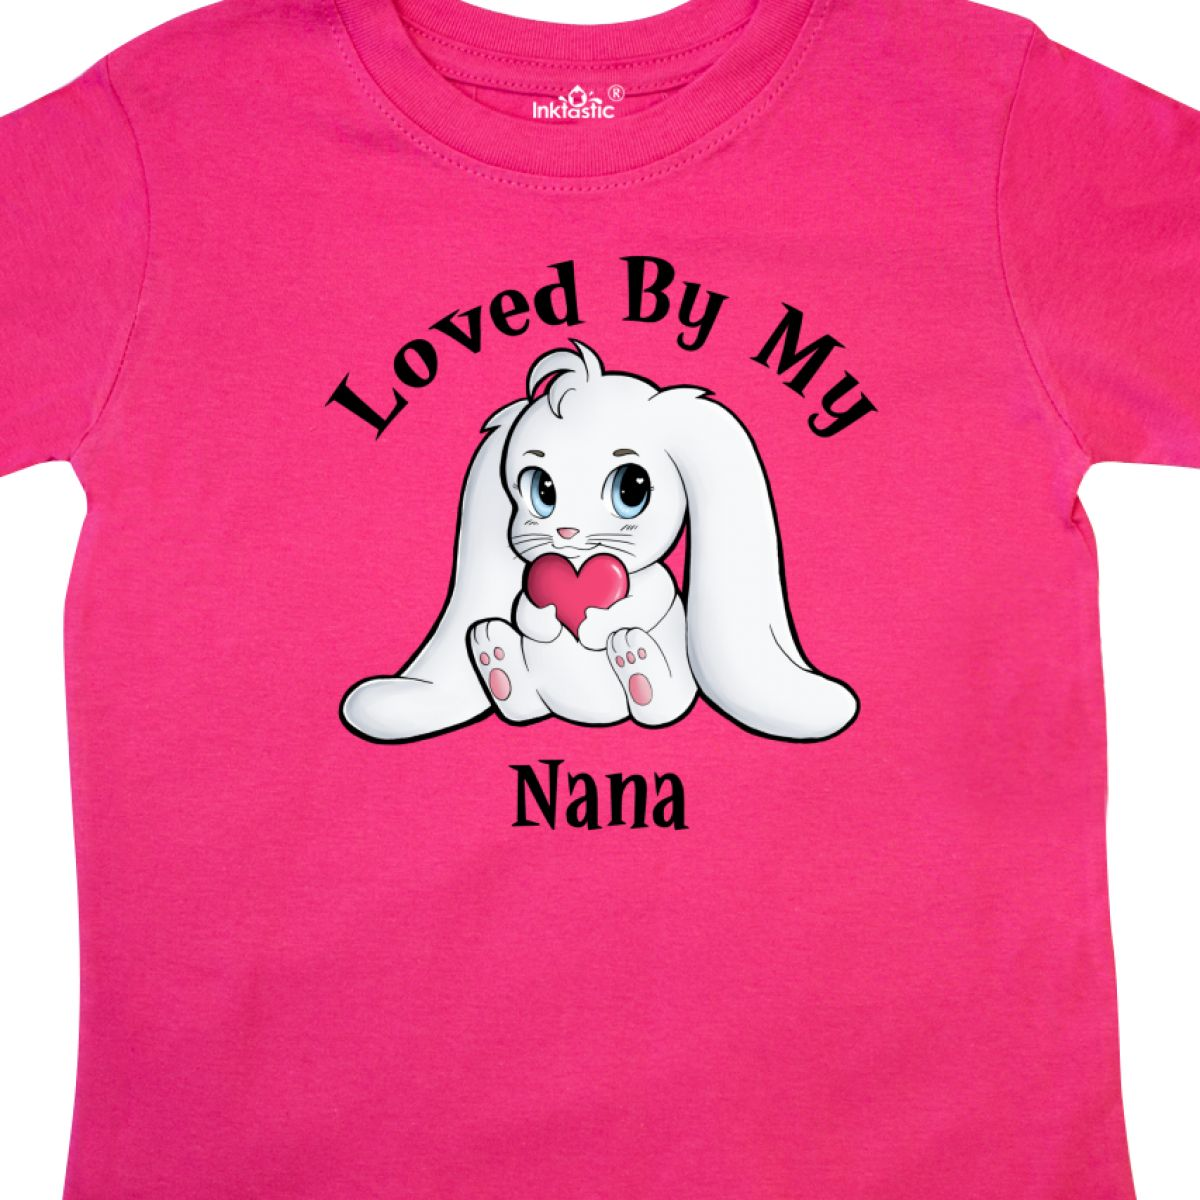 Inktastic-Loved-By-My-Nana-Bunny-Rabbit-Toddler-T-Shirt-Love-Valentines-Day-Baby thumbnail 4